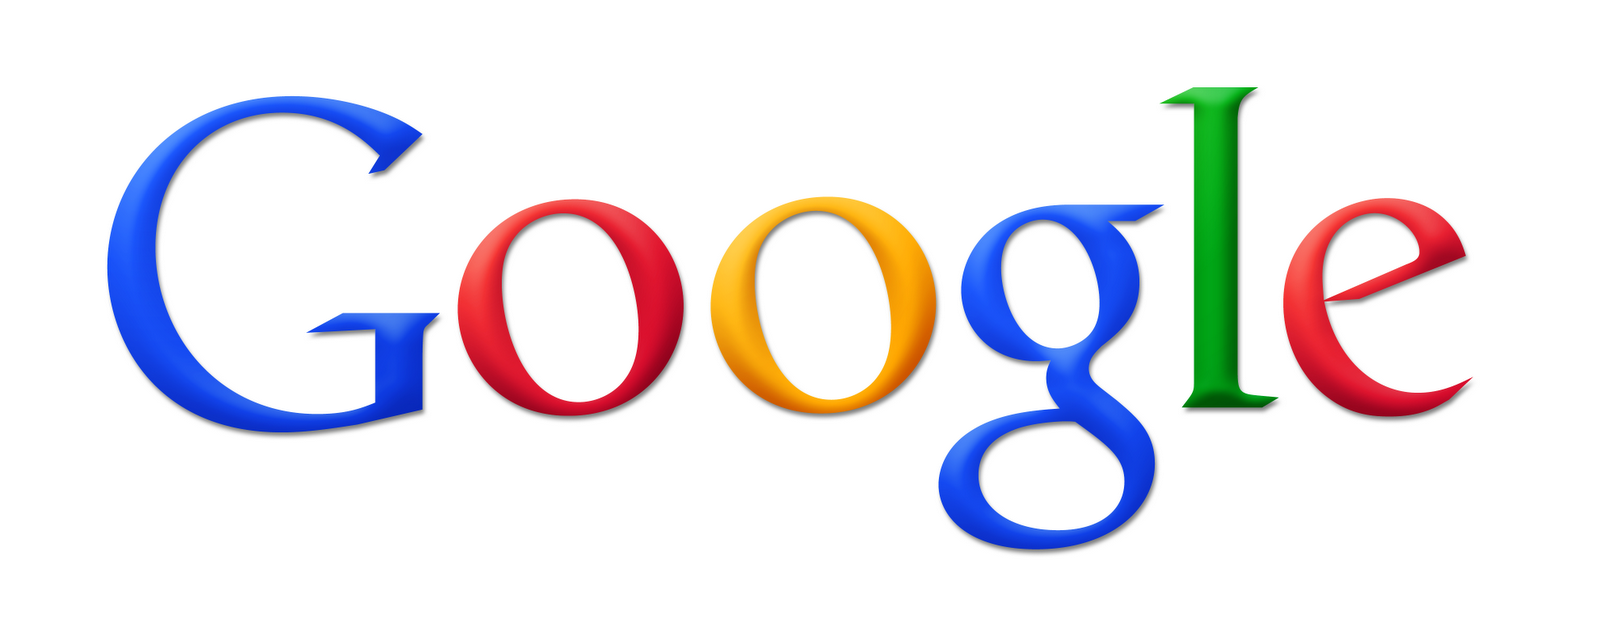 Search Web with Google